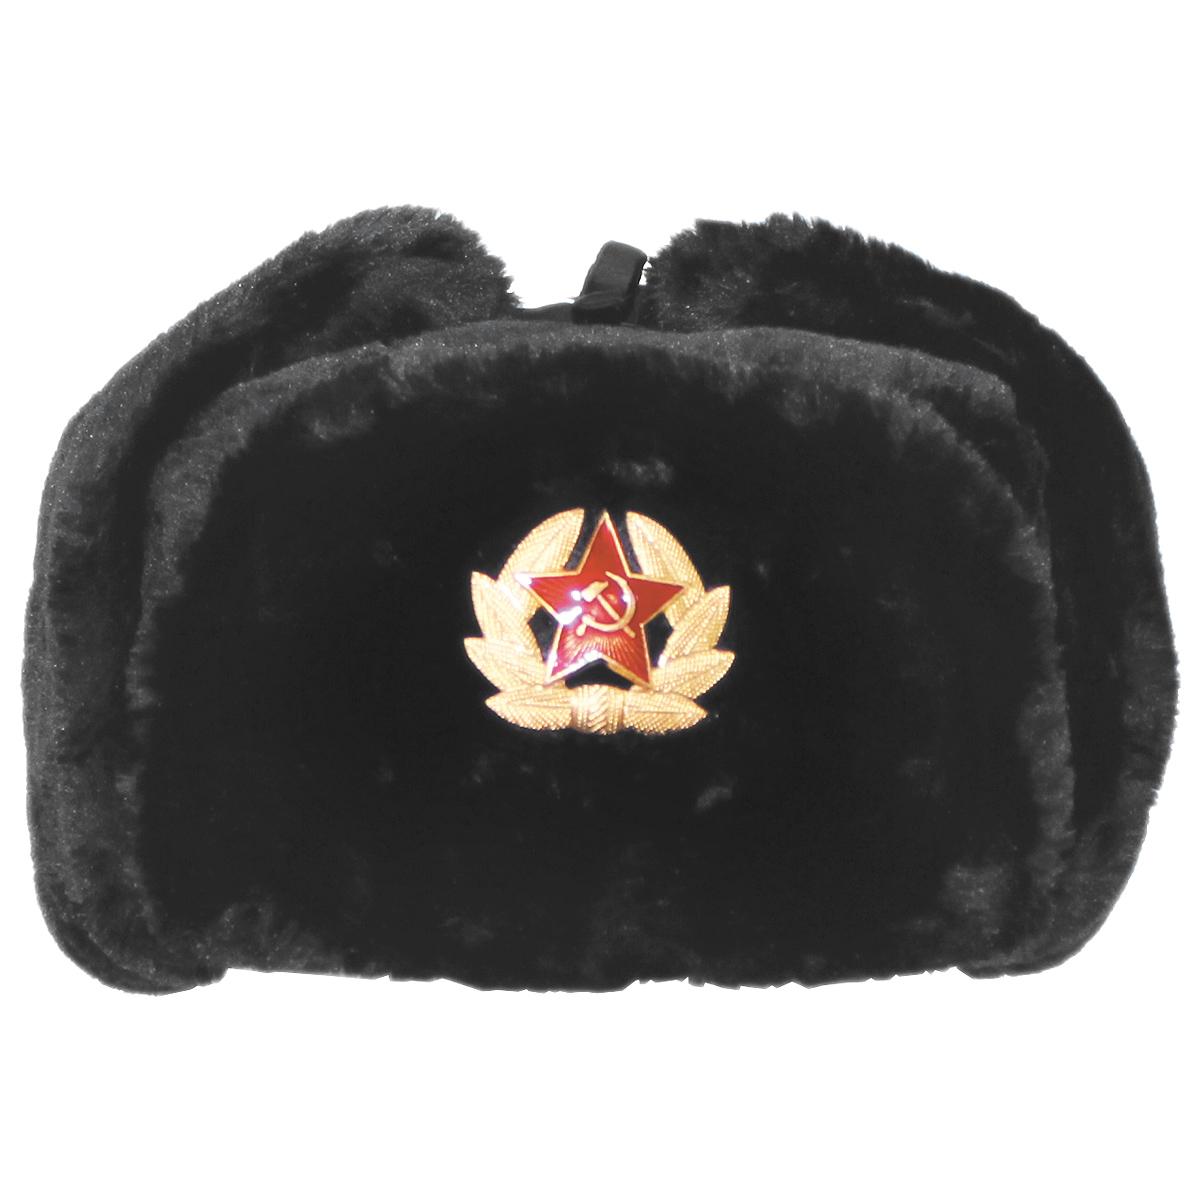 Russian winter hat name